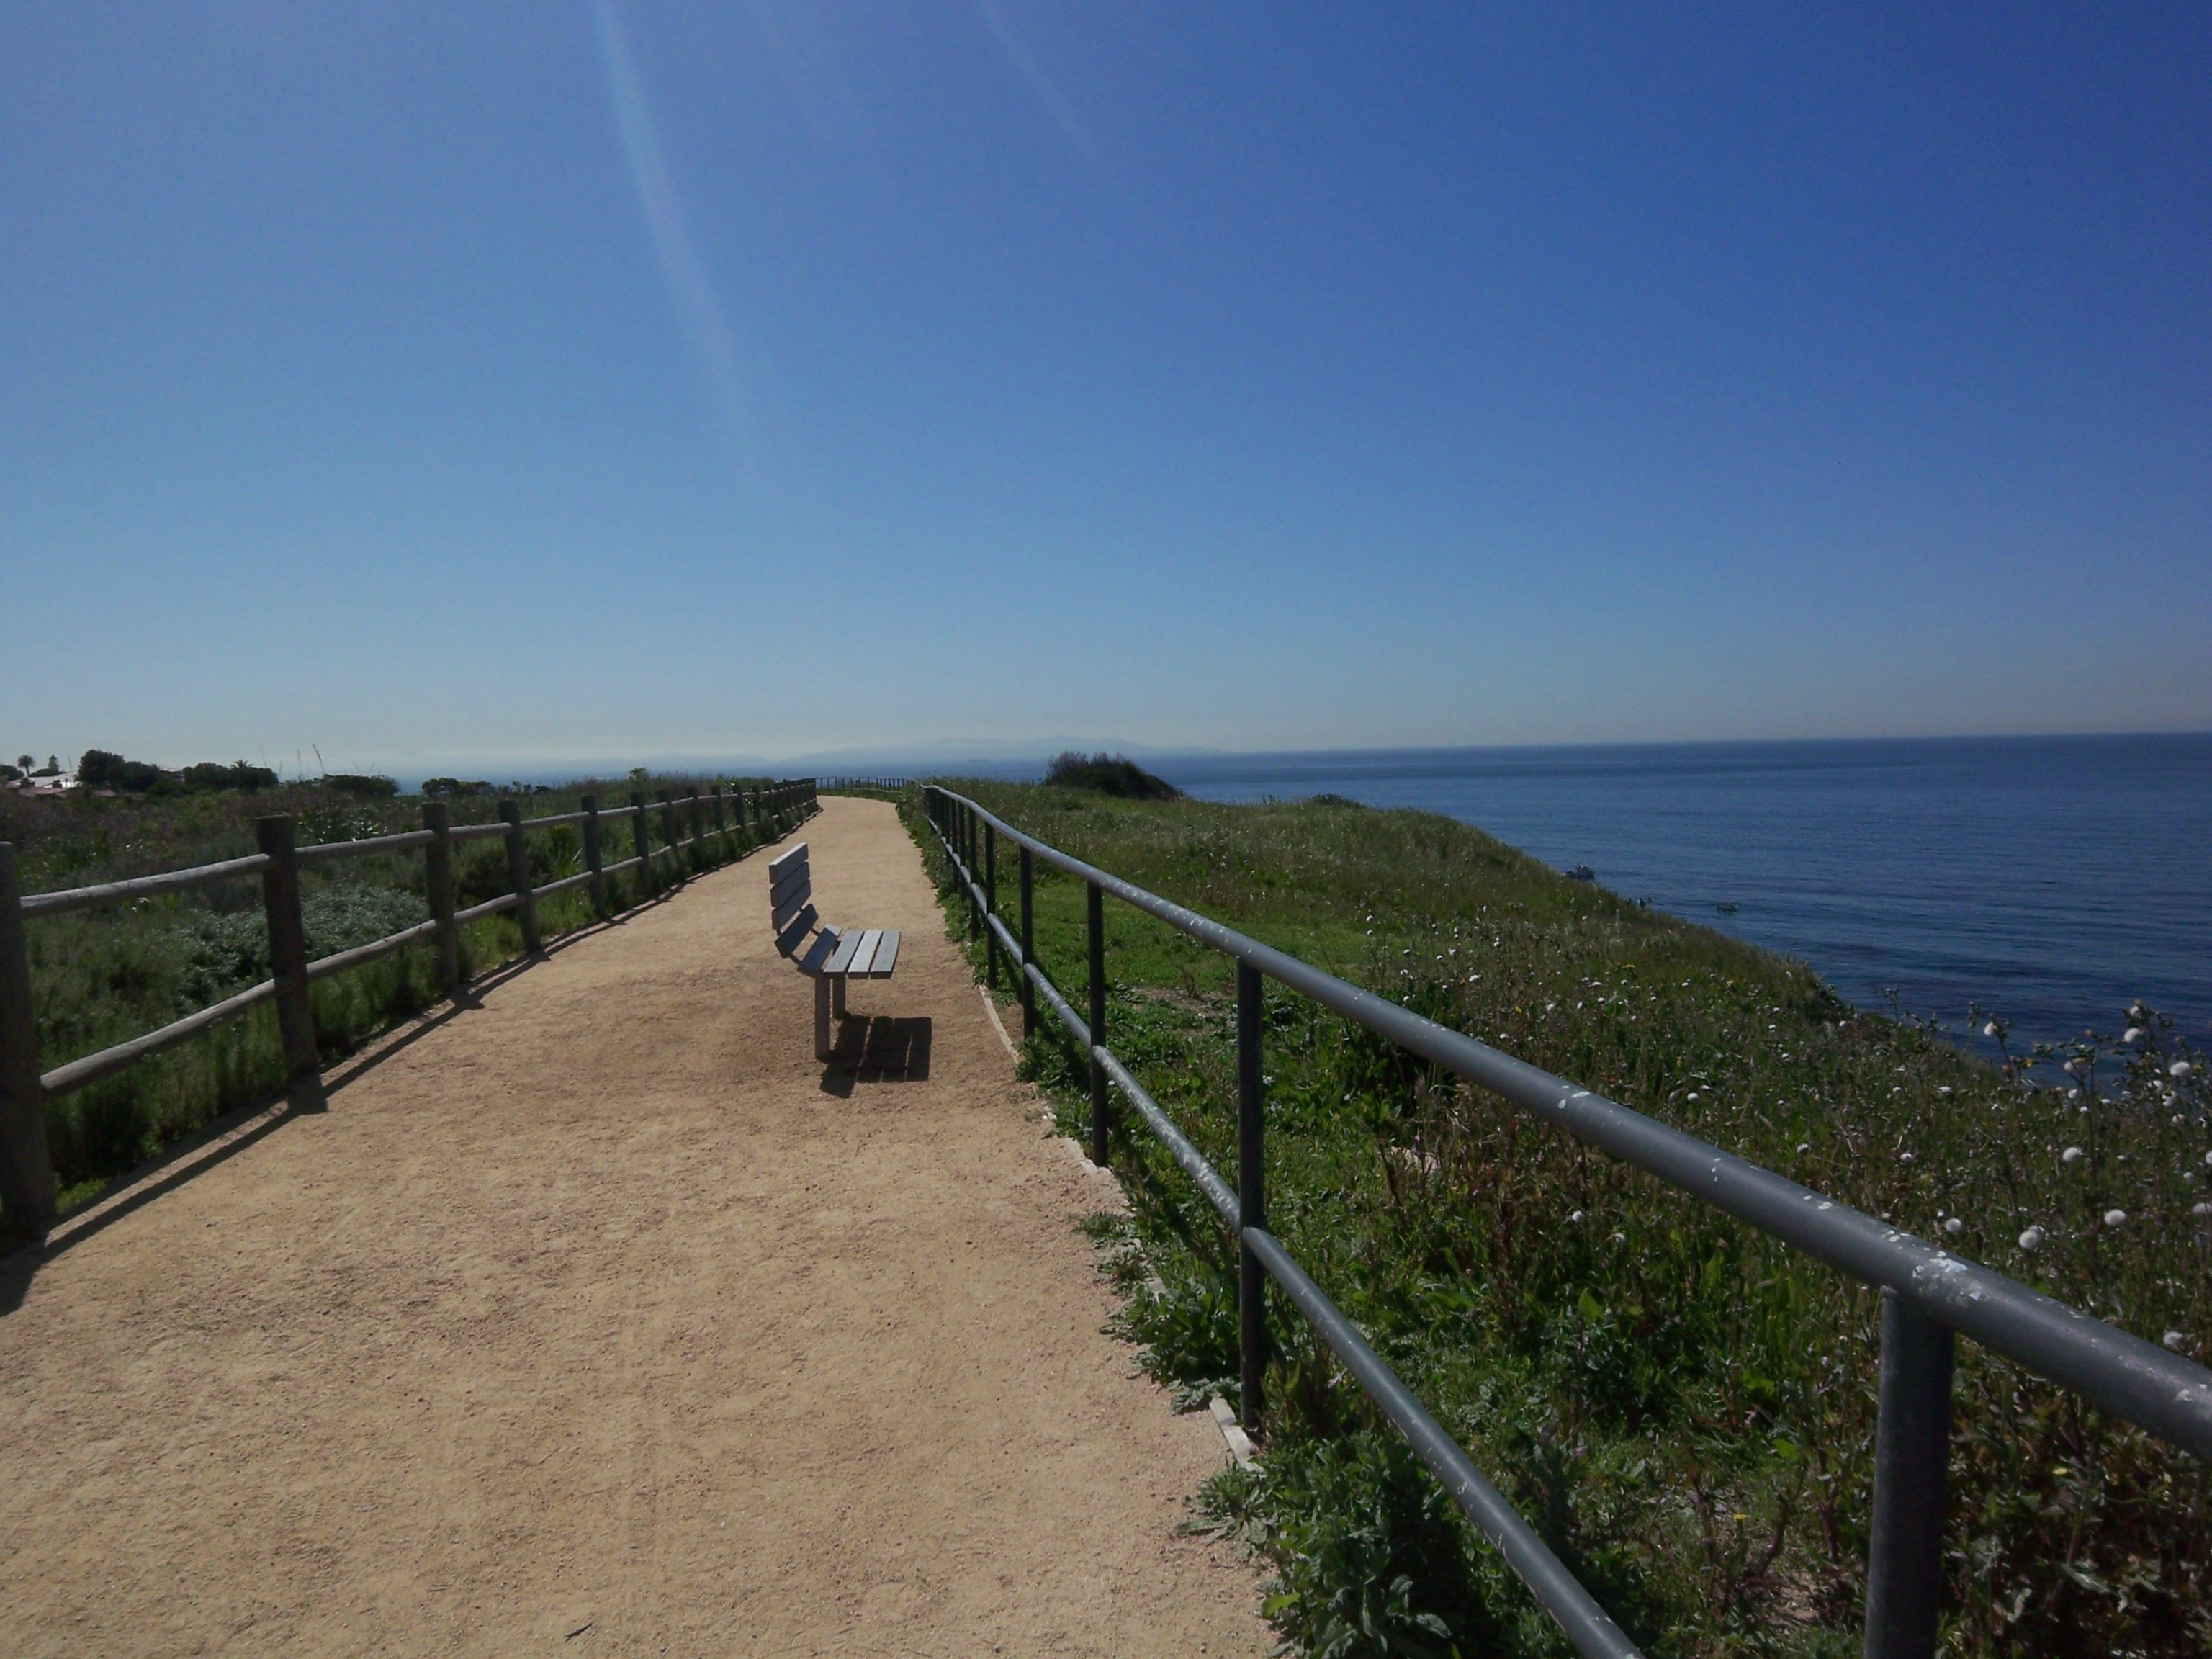 Oceanfront, a beautiful tract of homes has a path on the bluff that is the perfect place for early evening walks.